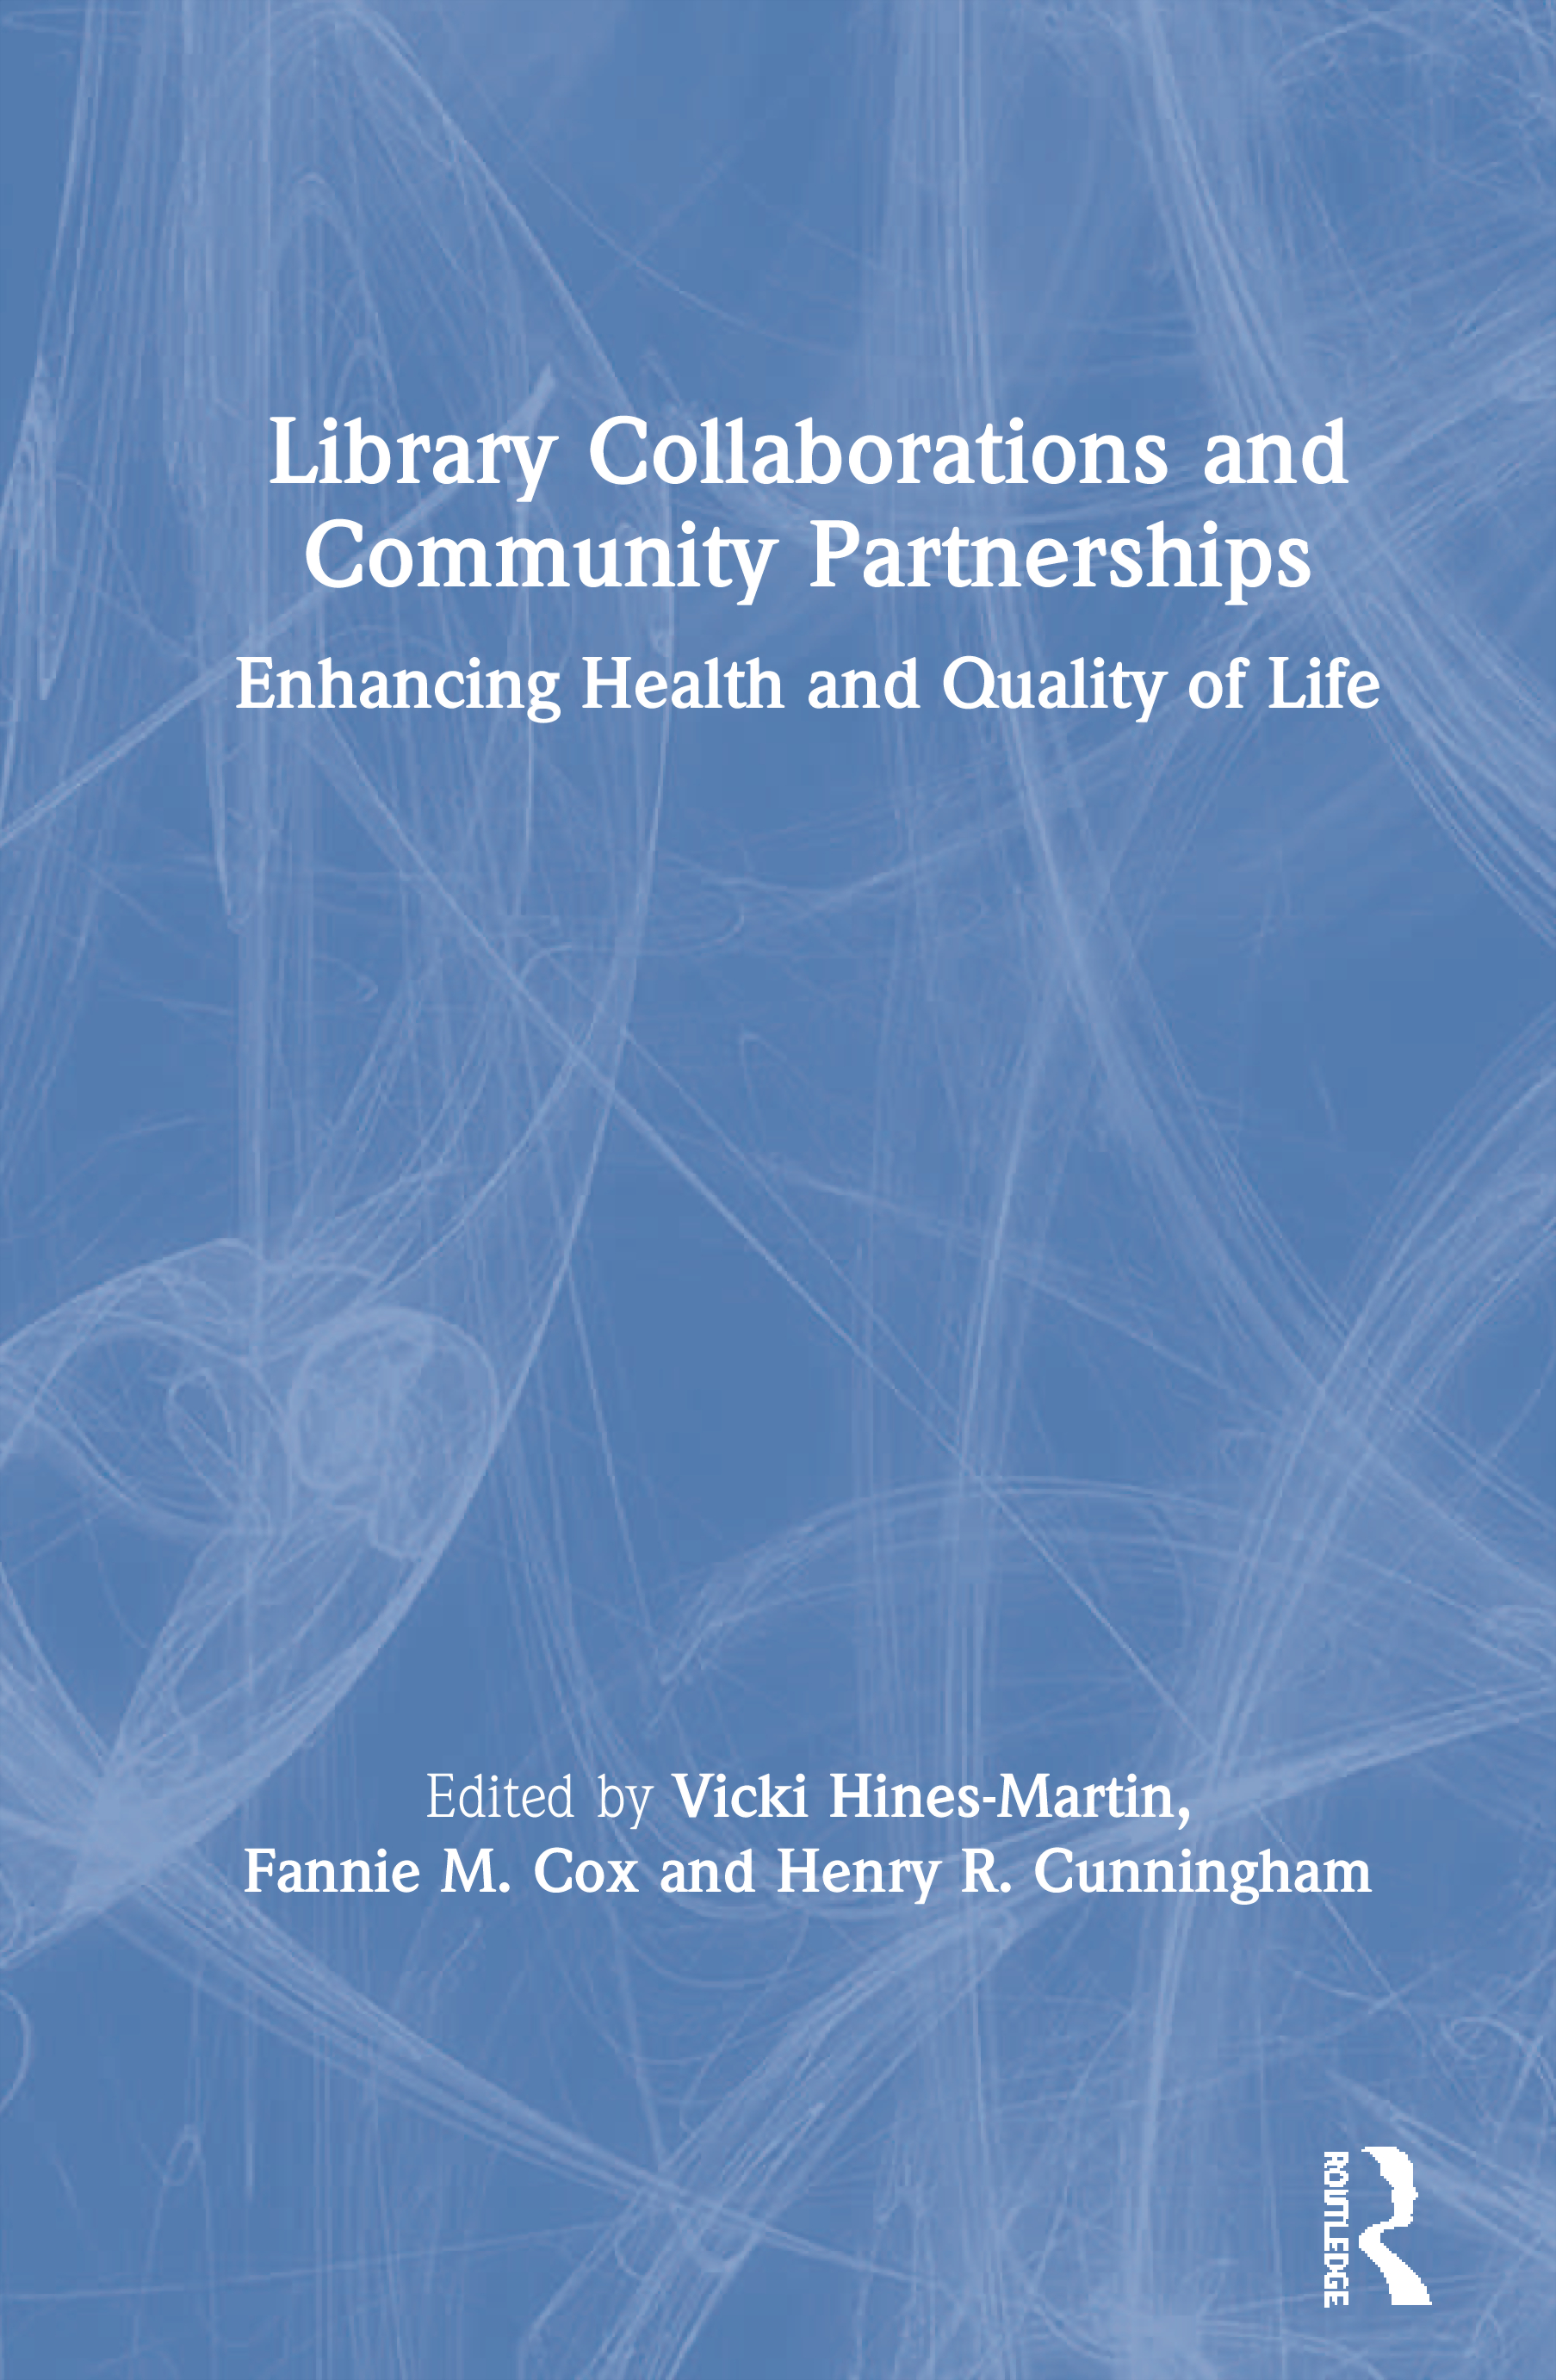 Library Collaborations and Community Partnerships: Enhancing Health and Quality of Life book cover